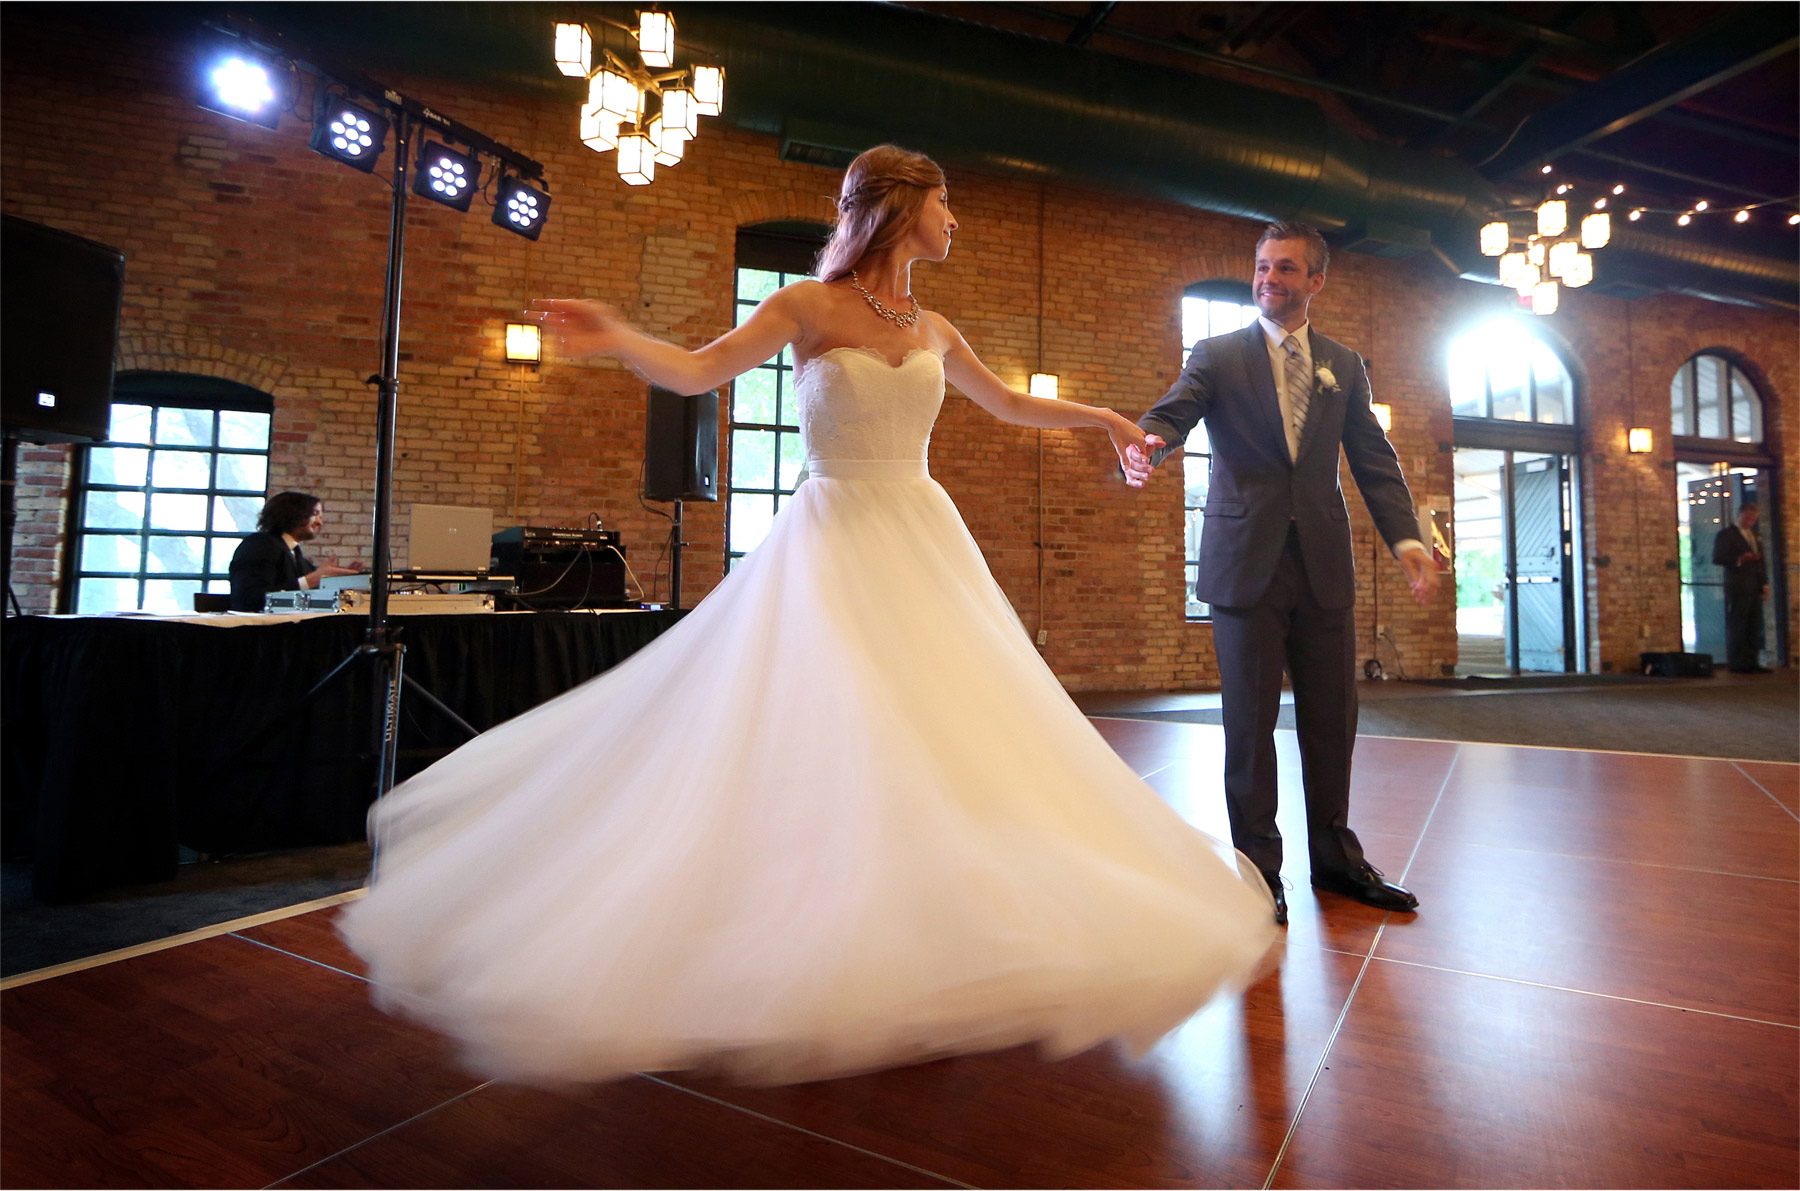 19-Minneapolis-Minnesota-Wedding-Photographer-by-Andrew-Vick-Photography-Summer-Bride-Groom-Nicollett-Island-Pavilion-Dress-Dance-Twirl-Katie-and-Travis.jpg